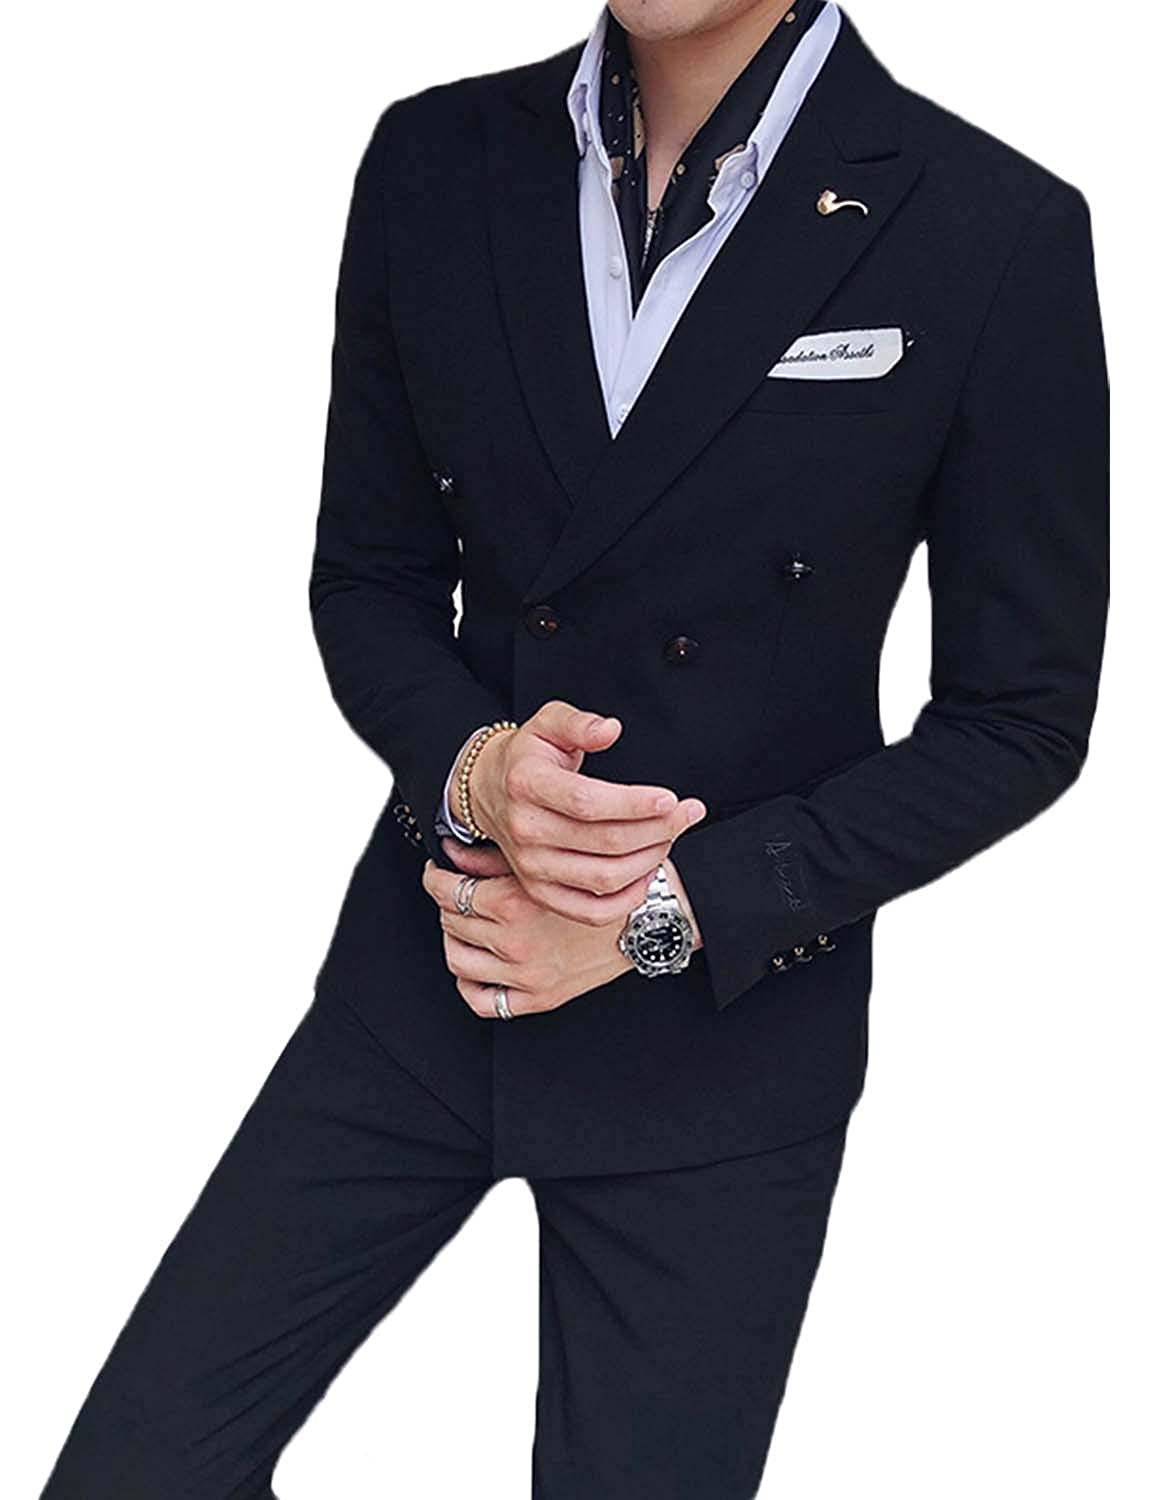 UMISS Mens 2-Piece Double-Breasted Slim Fit Solid Color Jacket Wedding Formal Suit